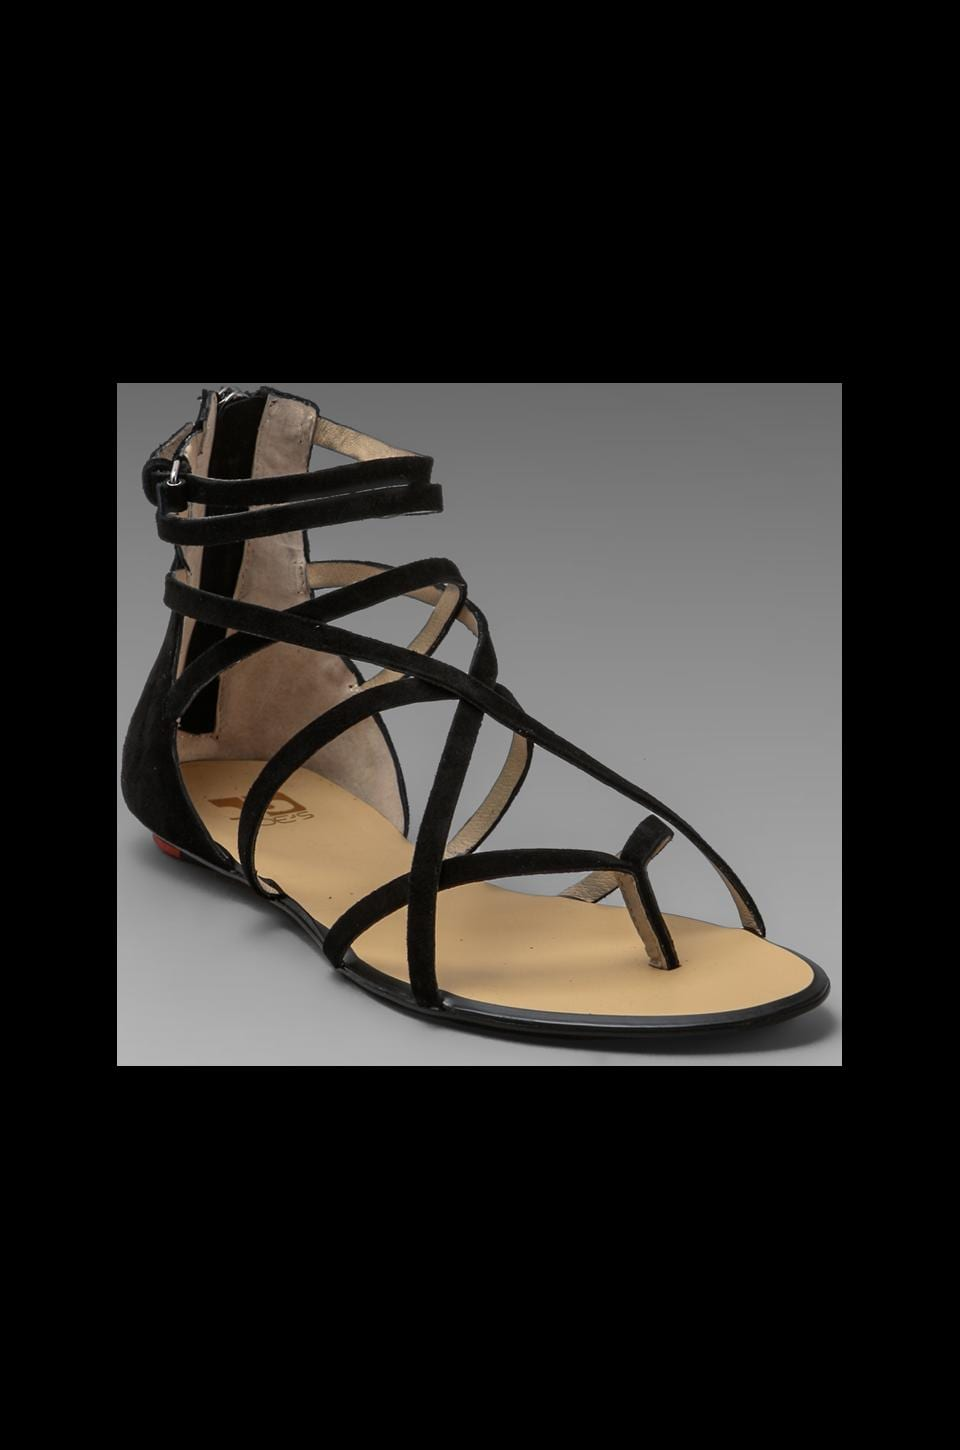 Joe's Jeans Keller Sandal in Black